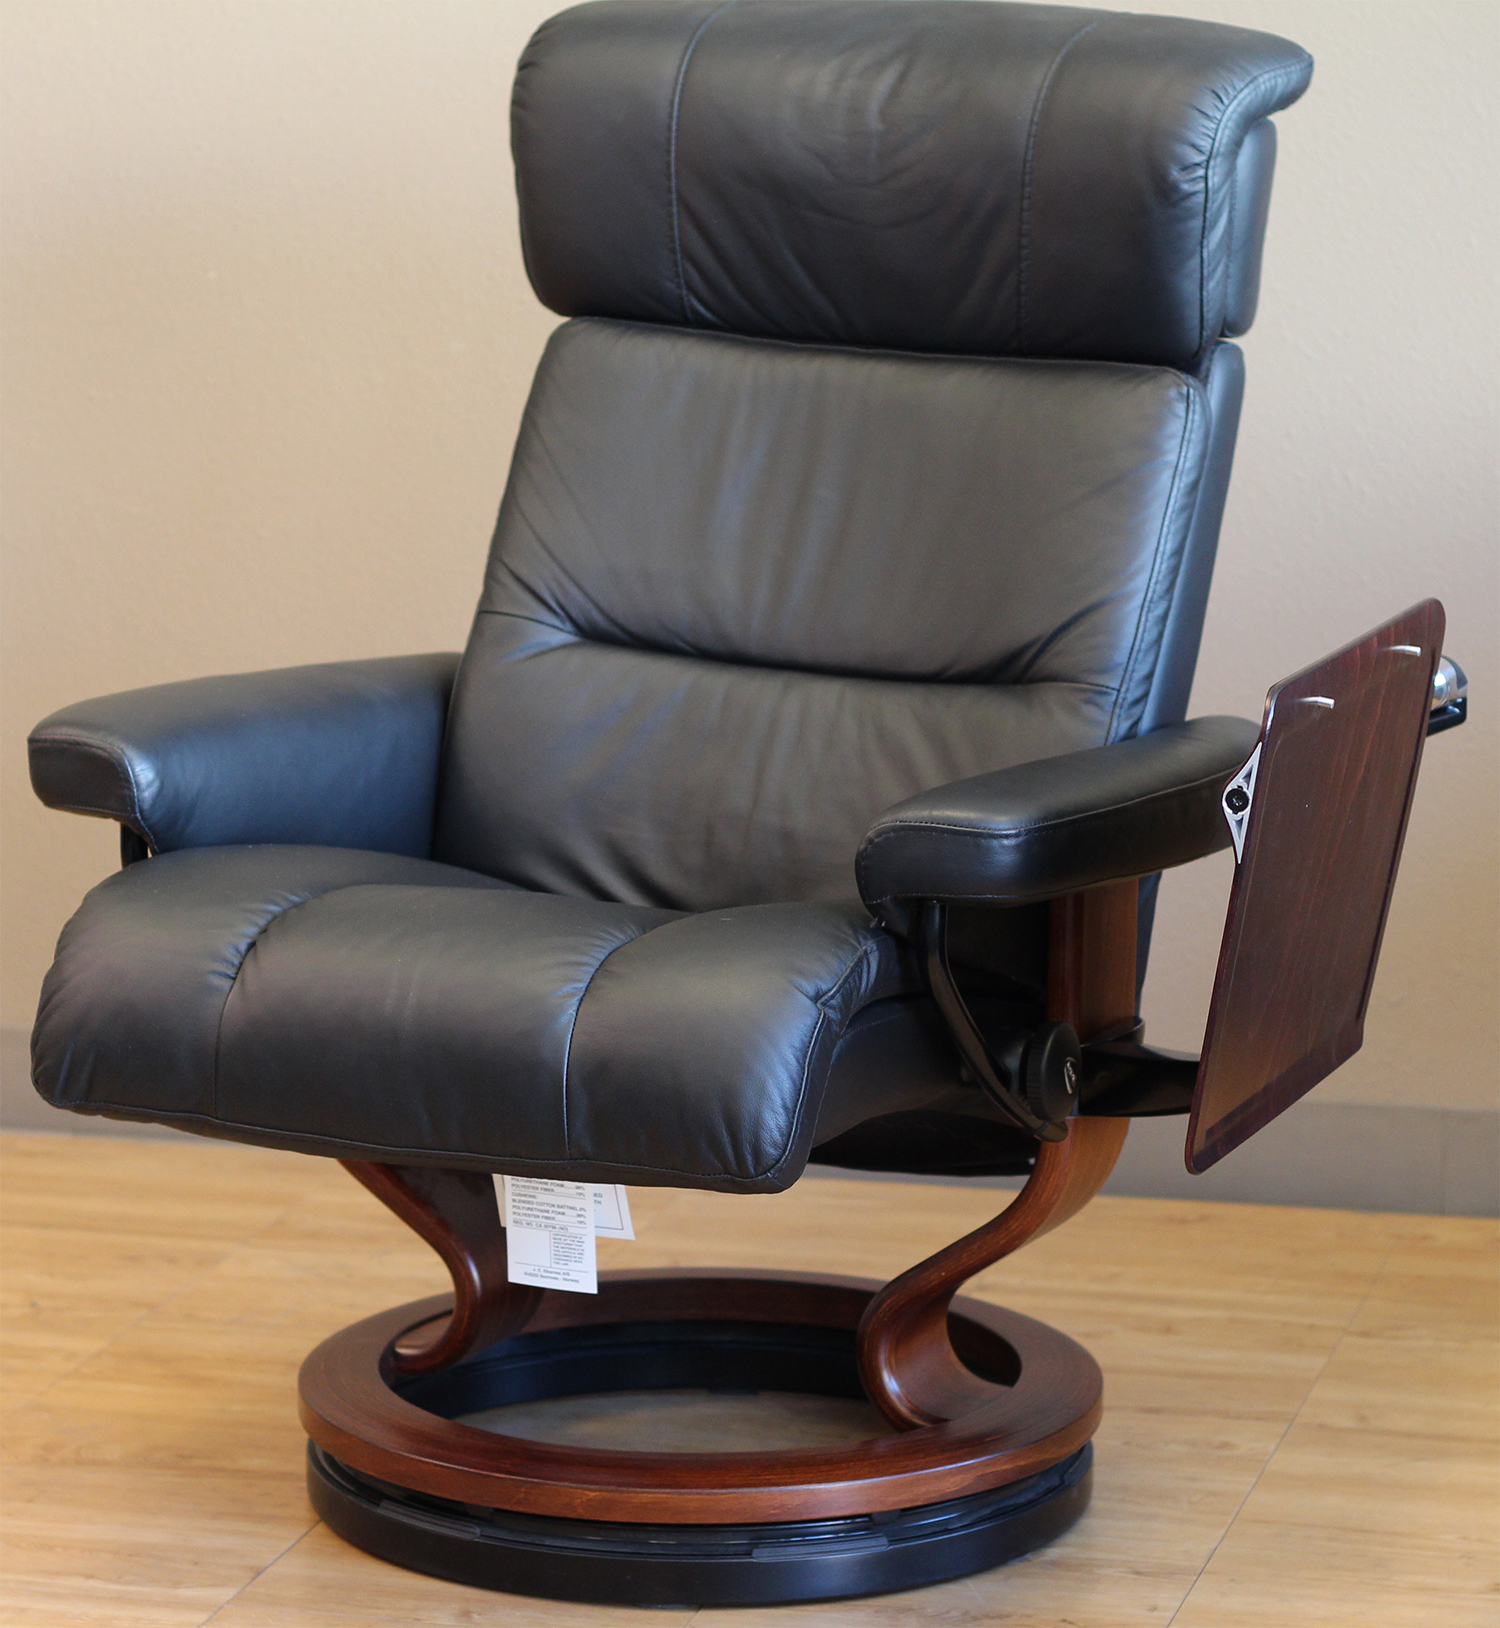 stressless recliner elevator ring for ekornes chairs. Black Bedroom Furniture Sets. Home Design Ideas